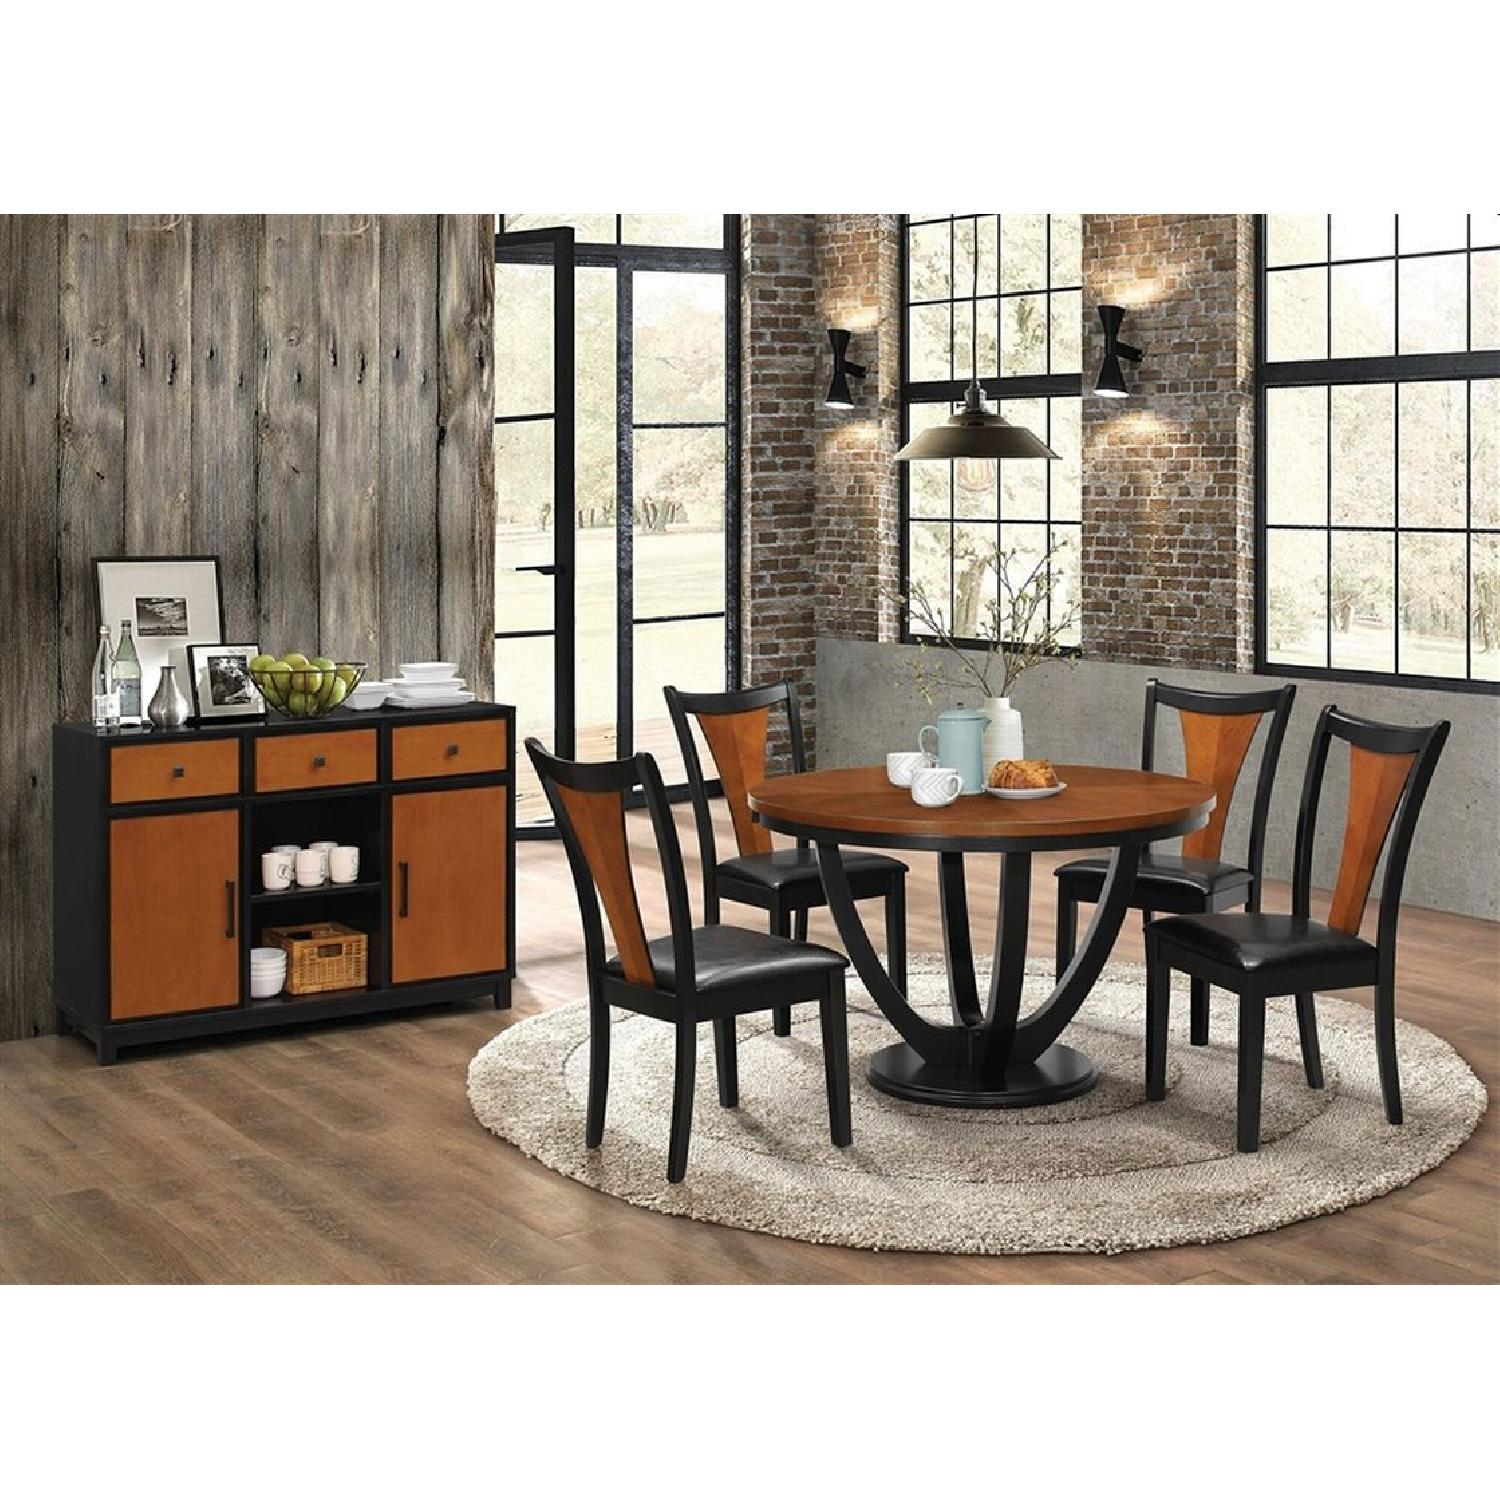 Bohemian Style Round Dining Table w/ Hand-Hammered Iron Top - image-15